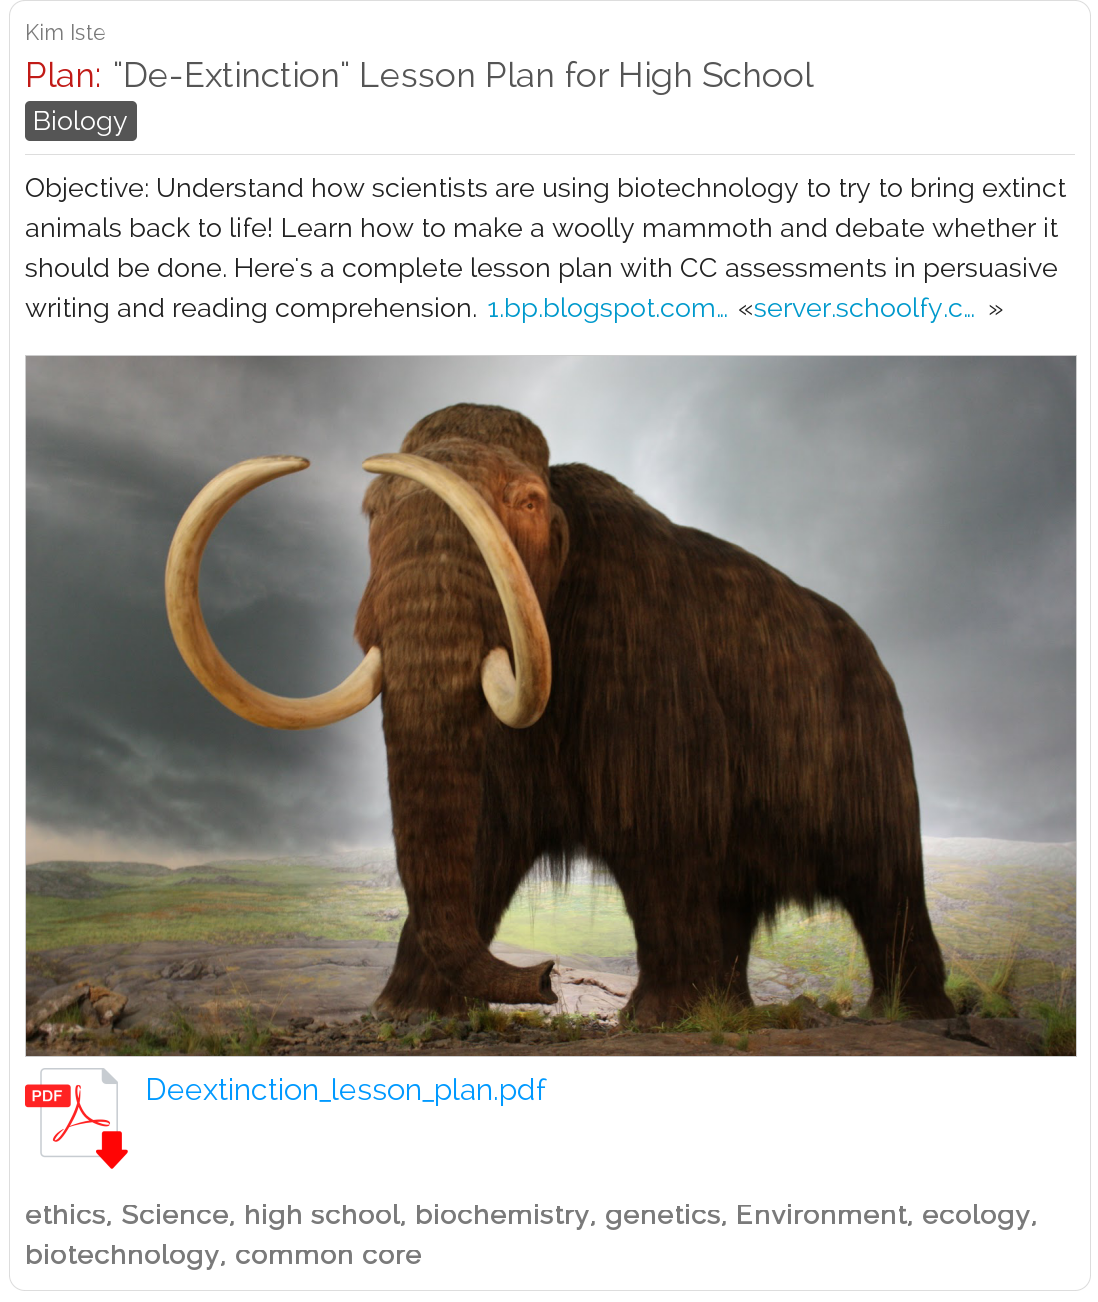 de extinction lesson plan for high school learn how to make a de extinction lesson plan for high school learn how to make a woolly mammoth and debate whether it should be done science lessonplan highsch